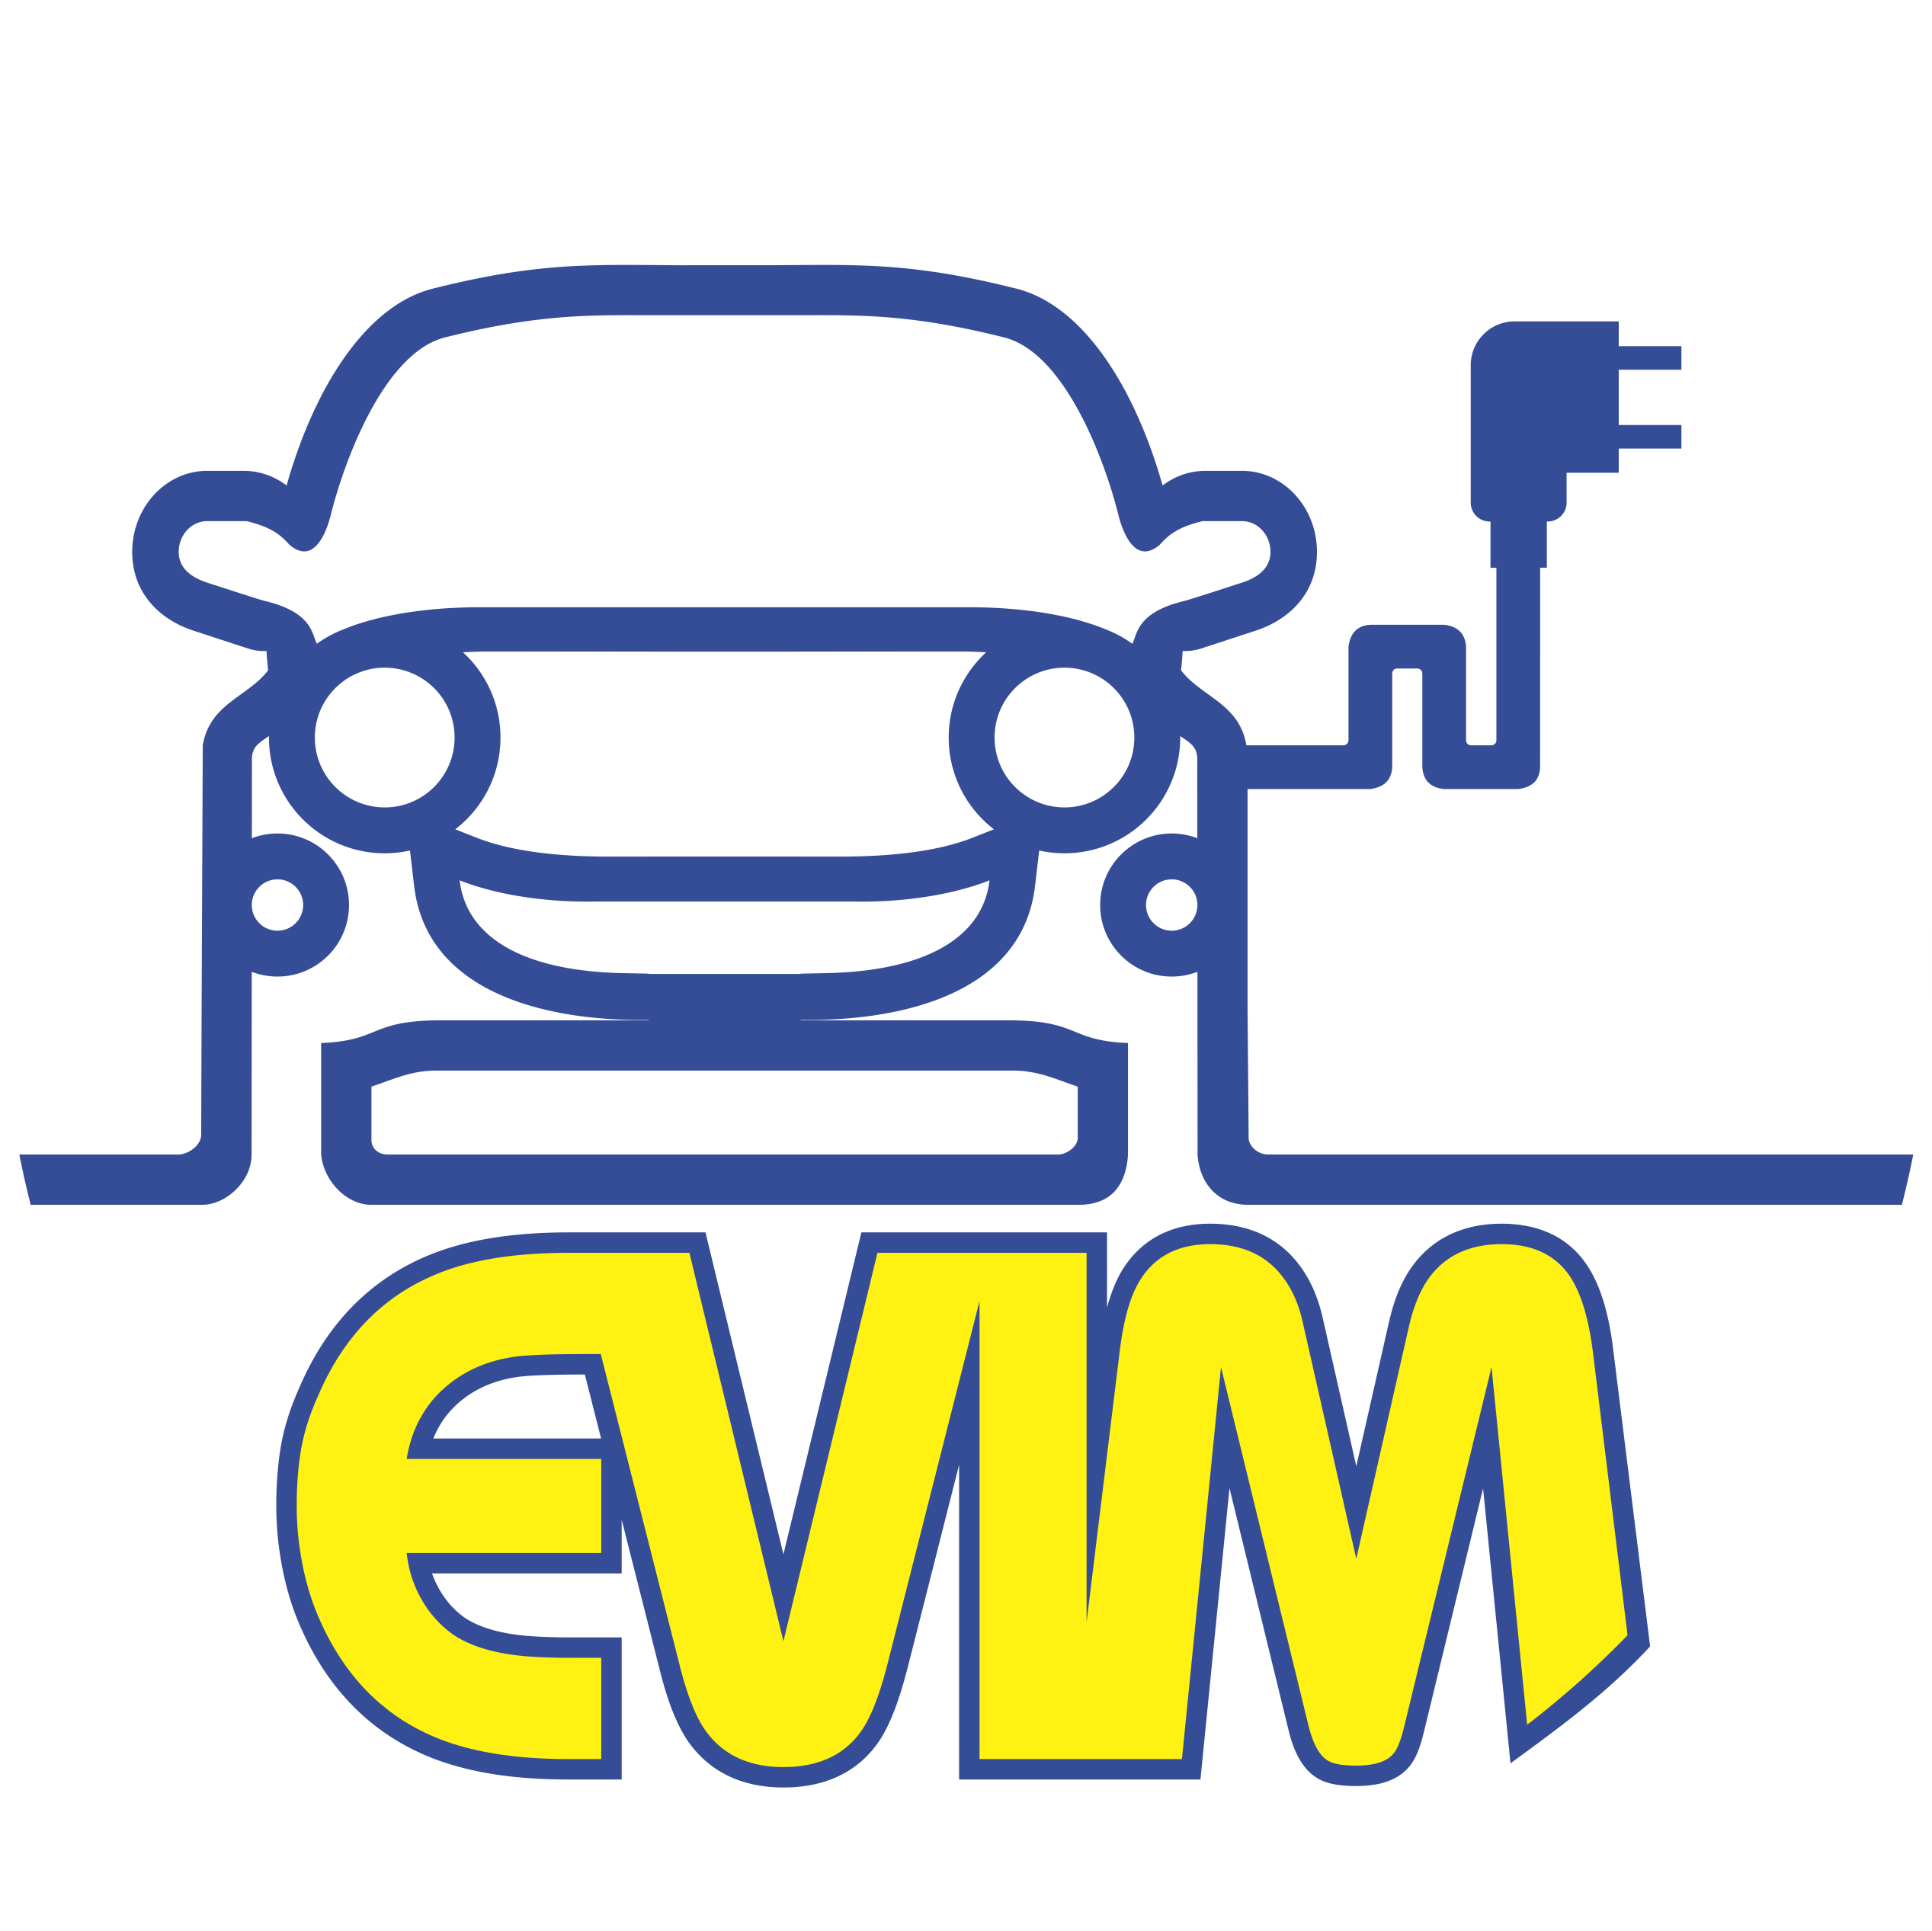 EVIM International Summit is opening an online global directory of media resources in EV, cleantech and sustainable development.